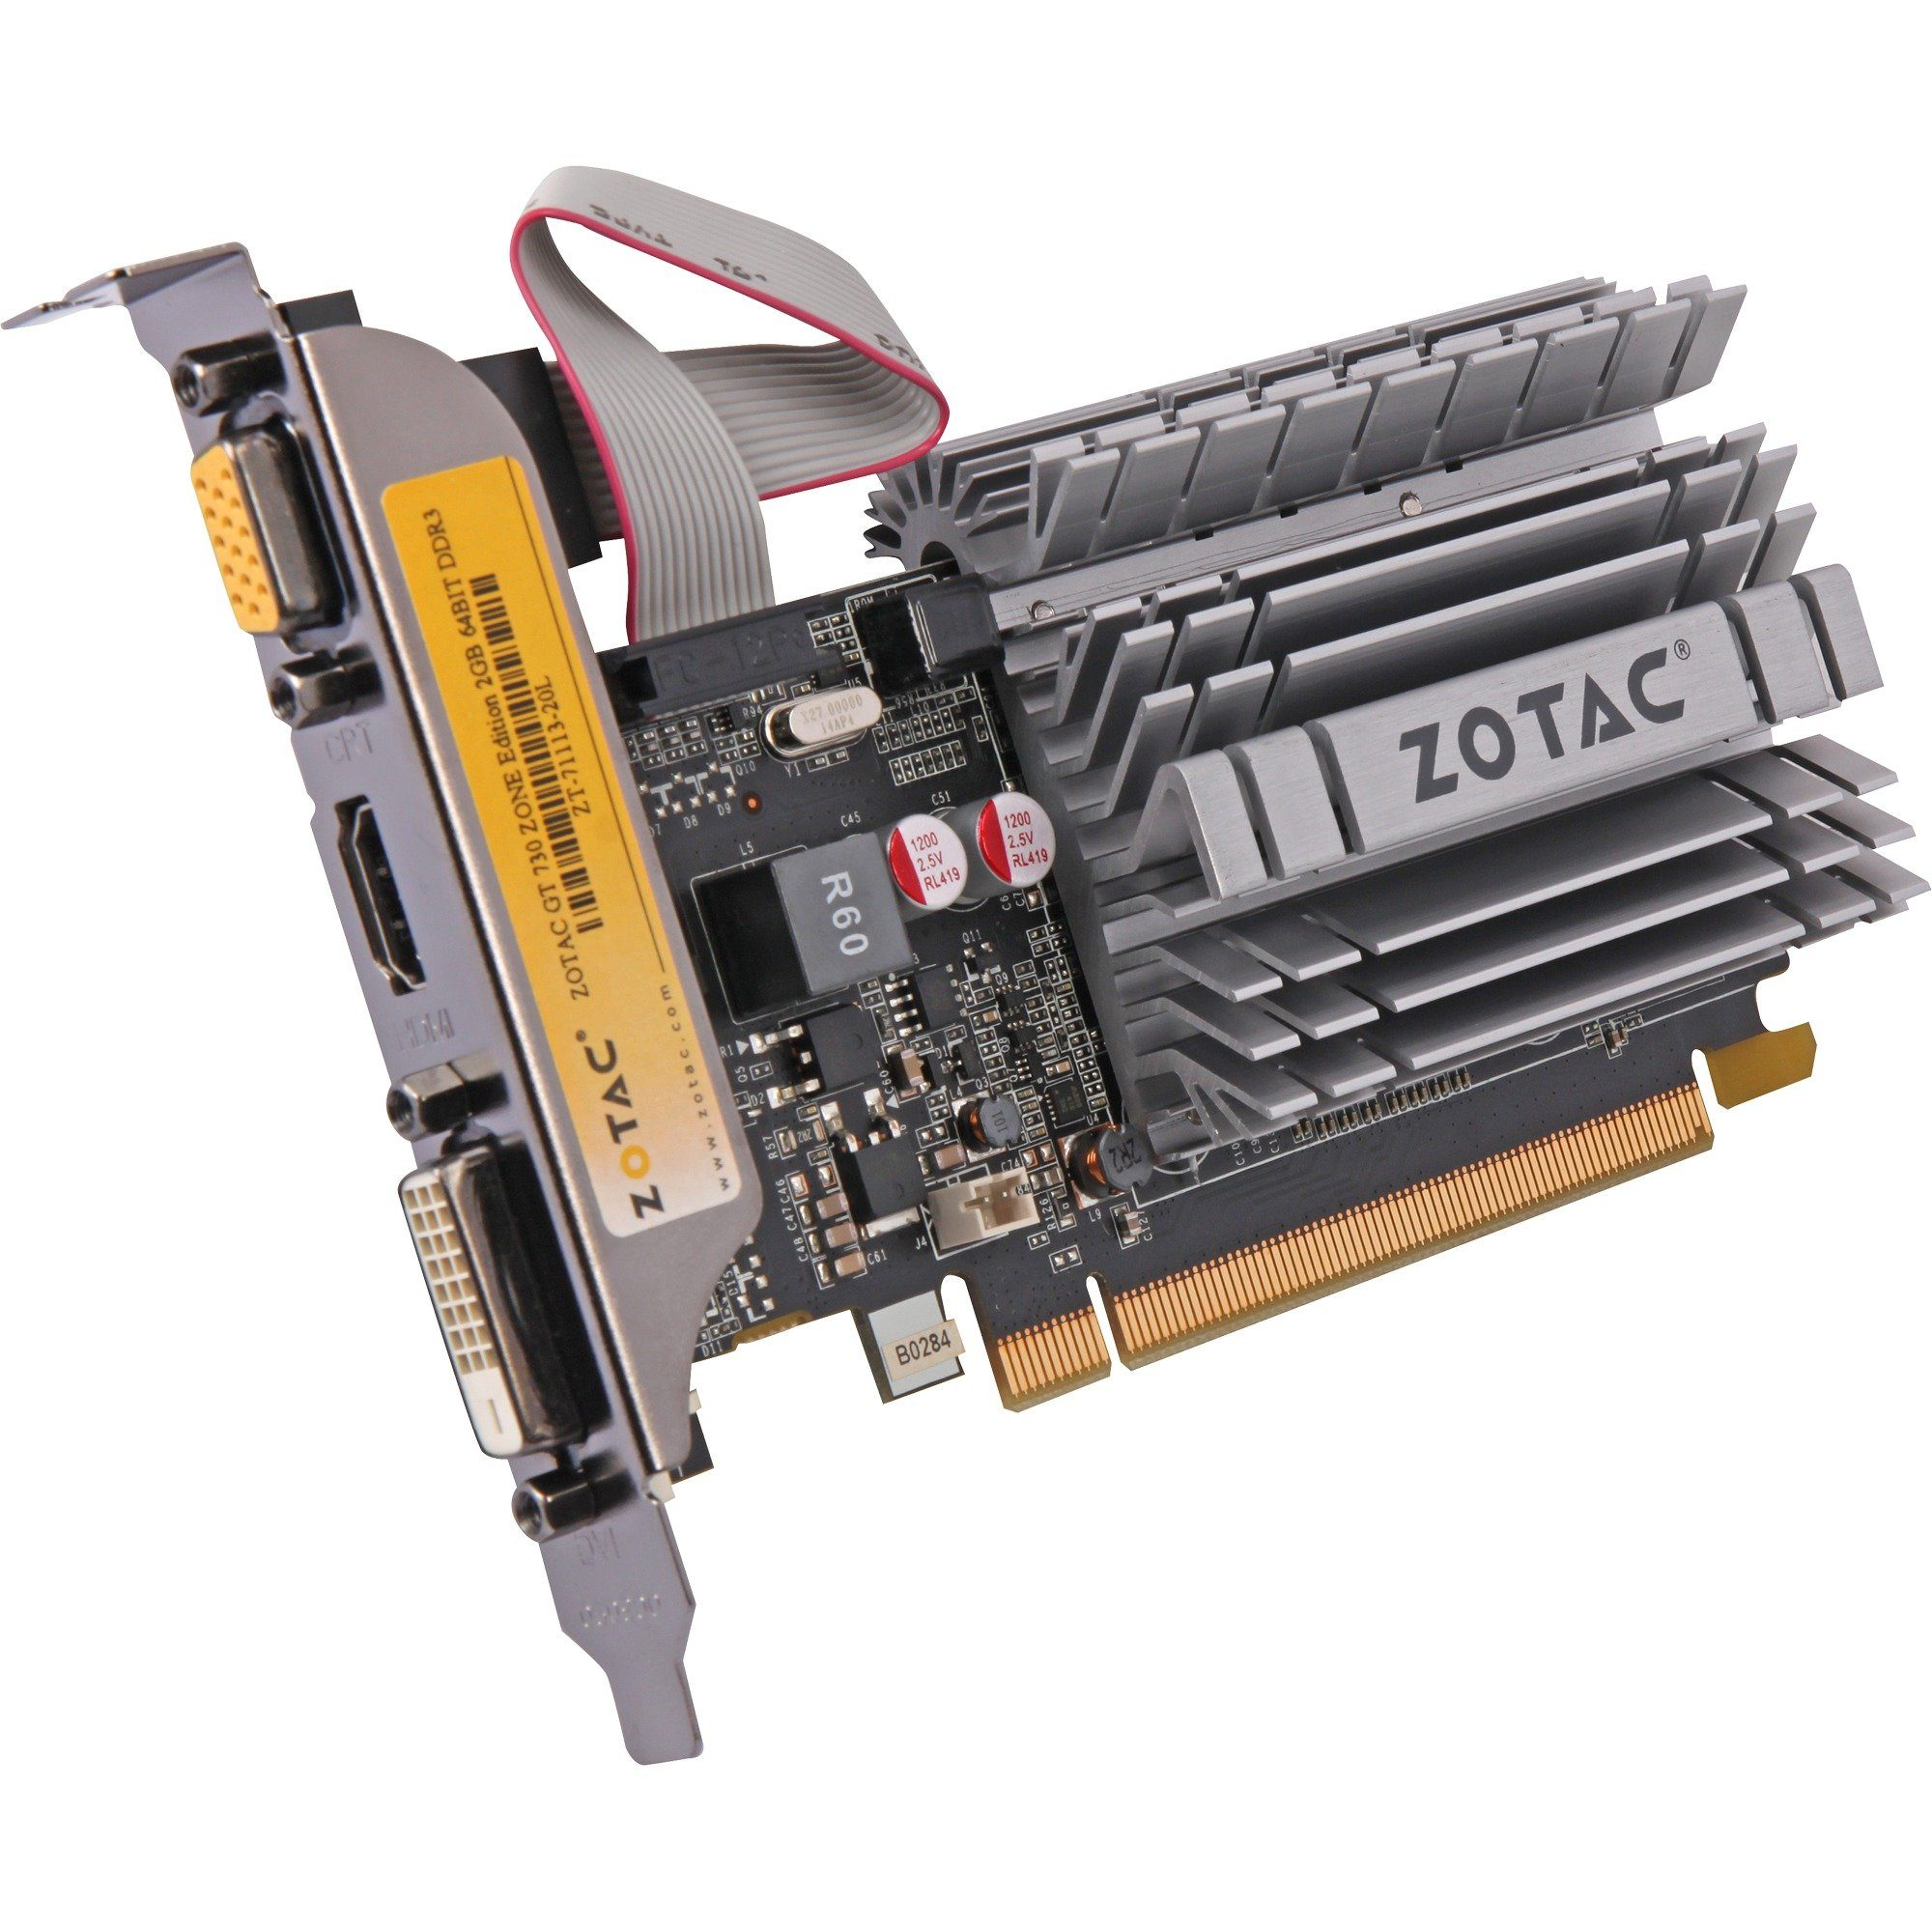 ZOTAC Grafikkarte »2GB GT730 ZONE«